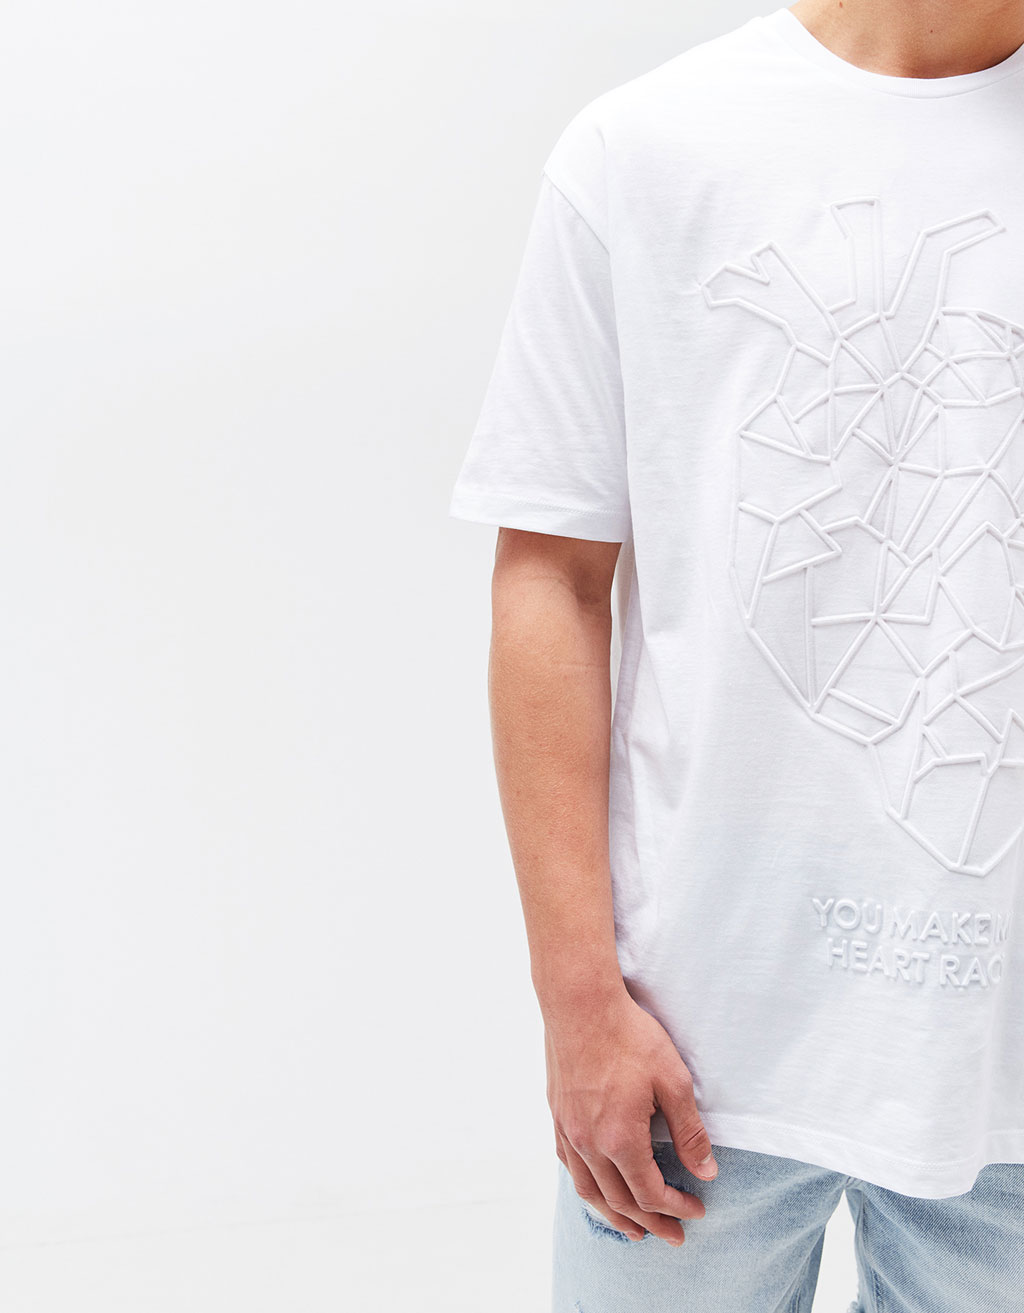 Raised Wolf/Heart print T-shirt